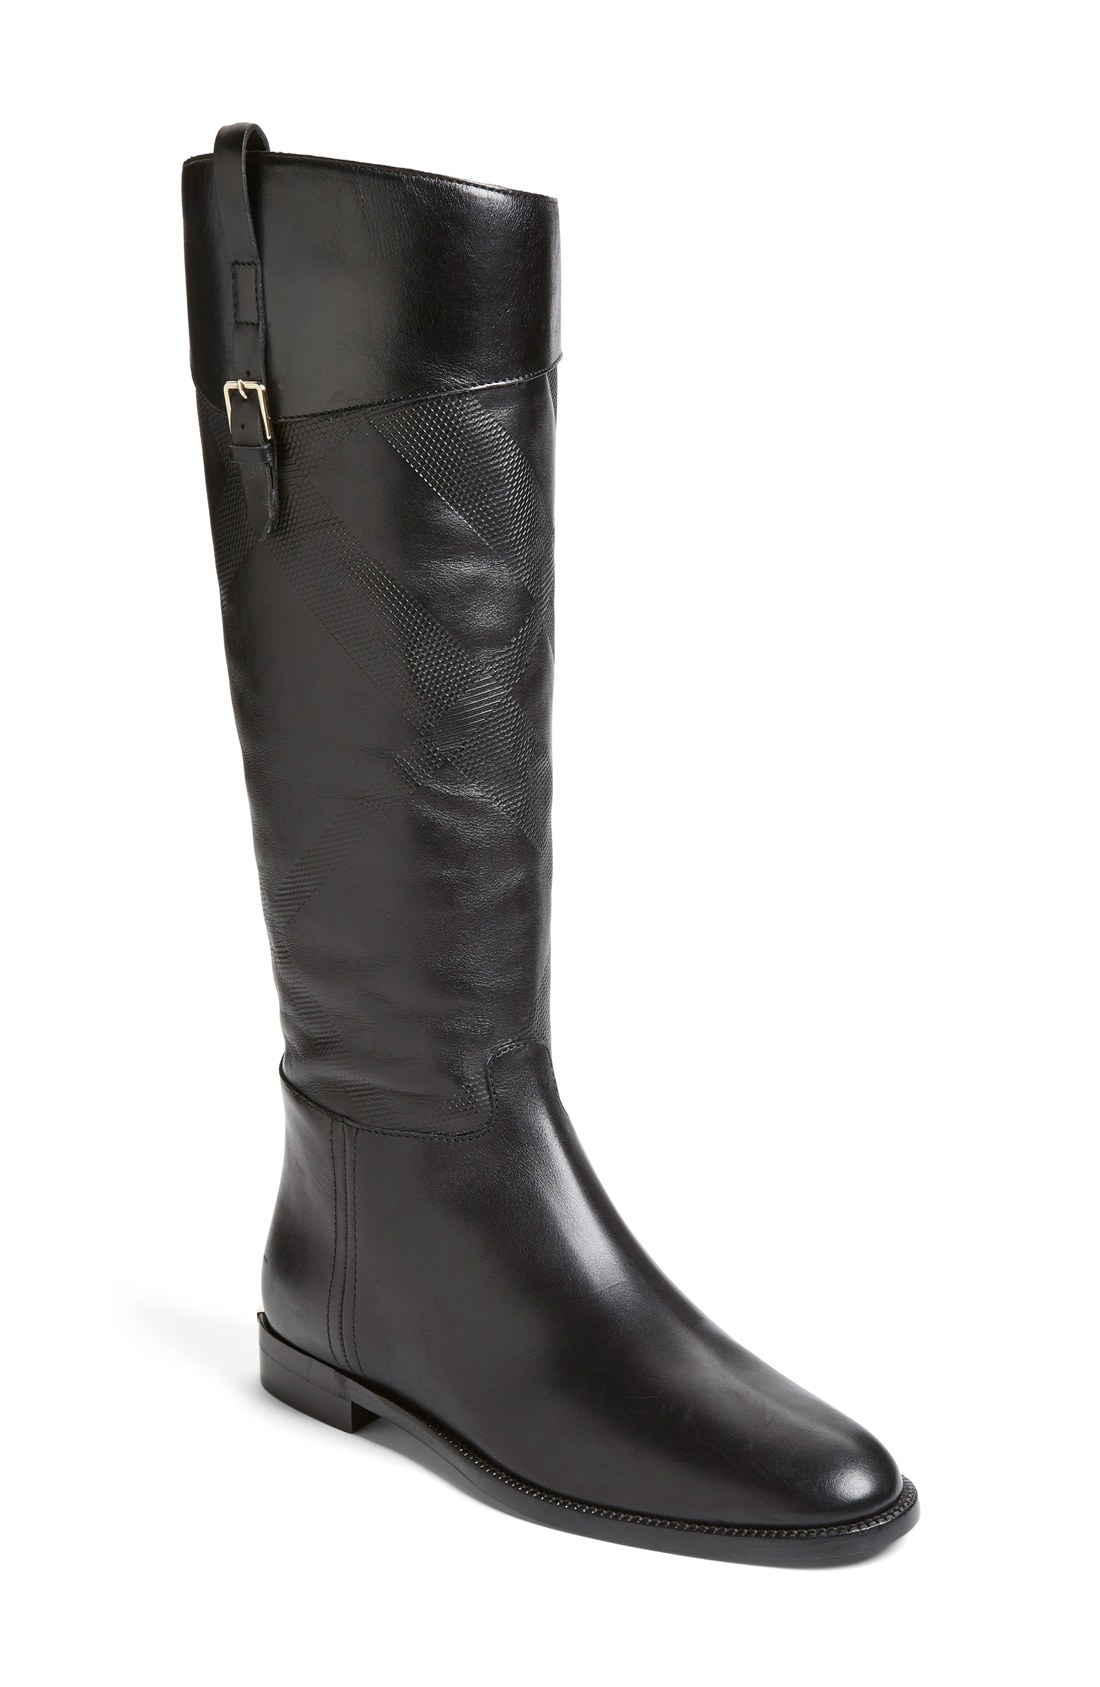 Womens Black Riding Boots piczAnAZ